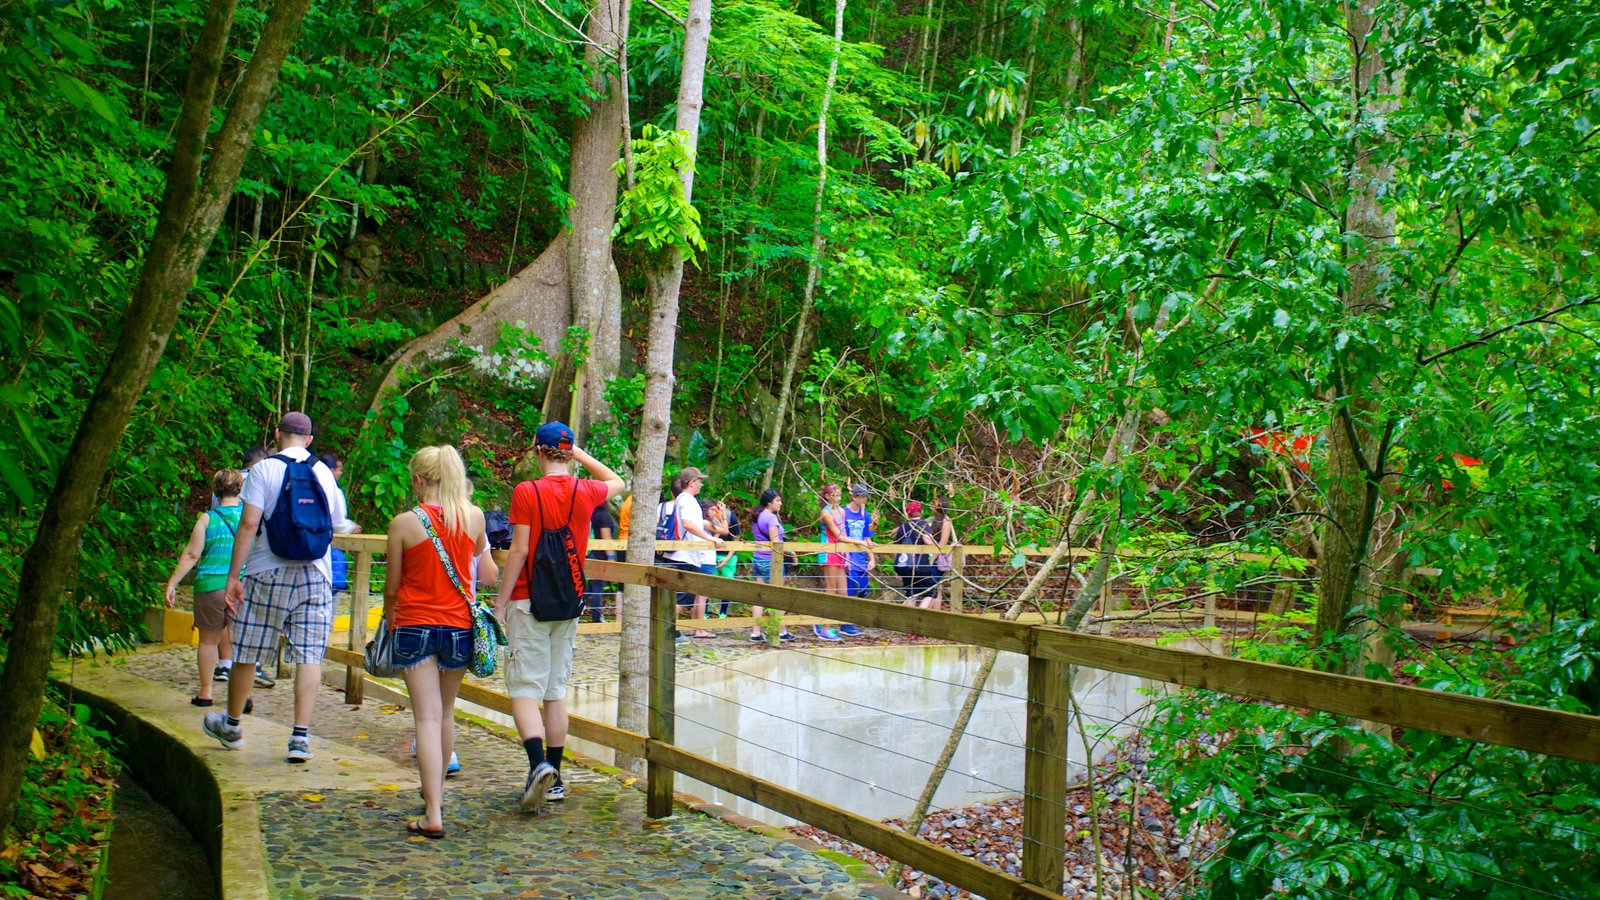 Hacienda Buena Vista showing rainforest and hiking or walking as well as a large group of people